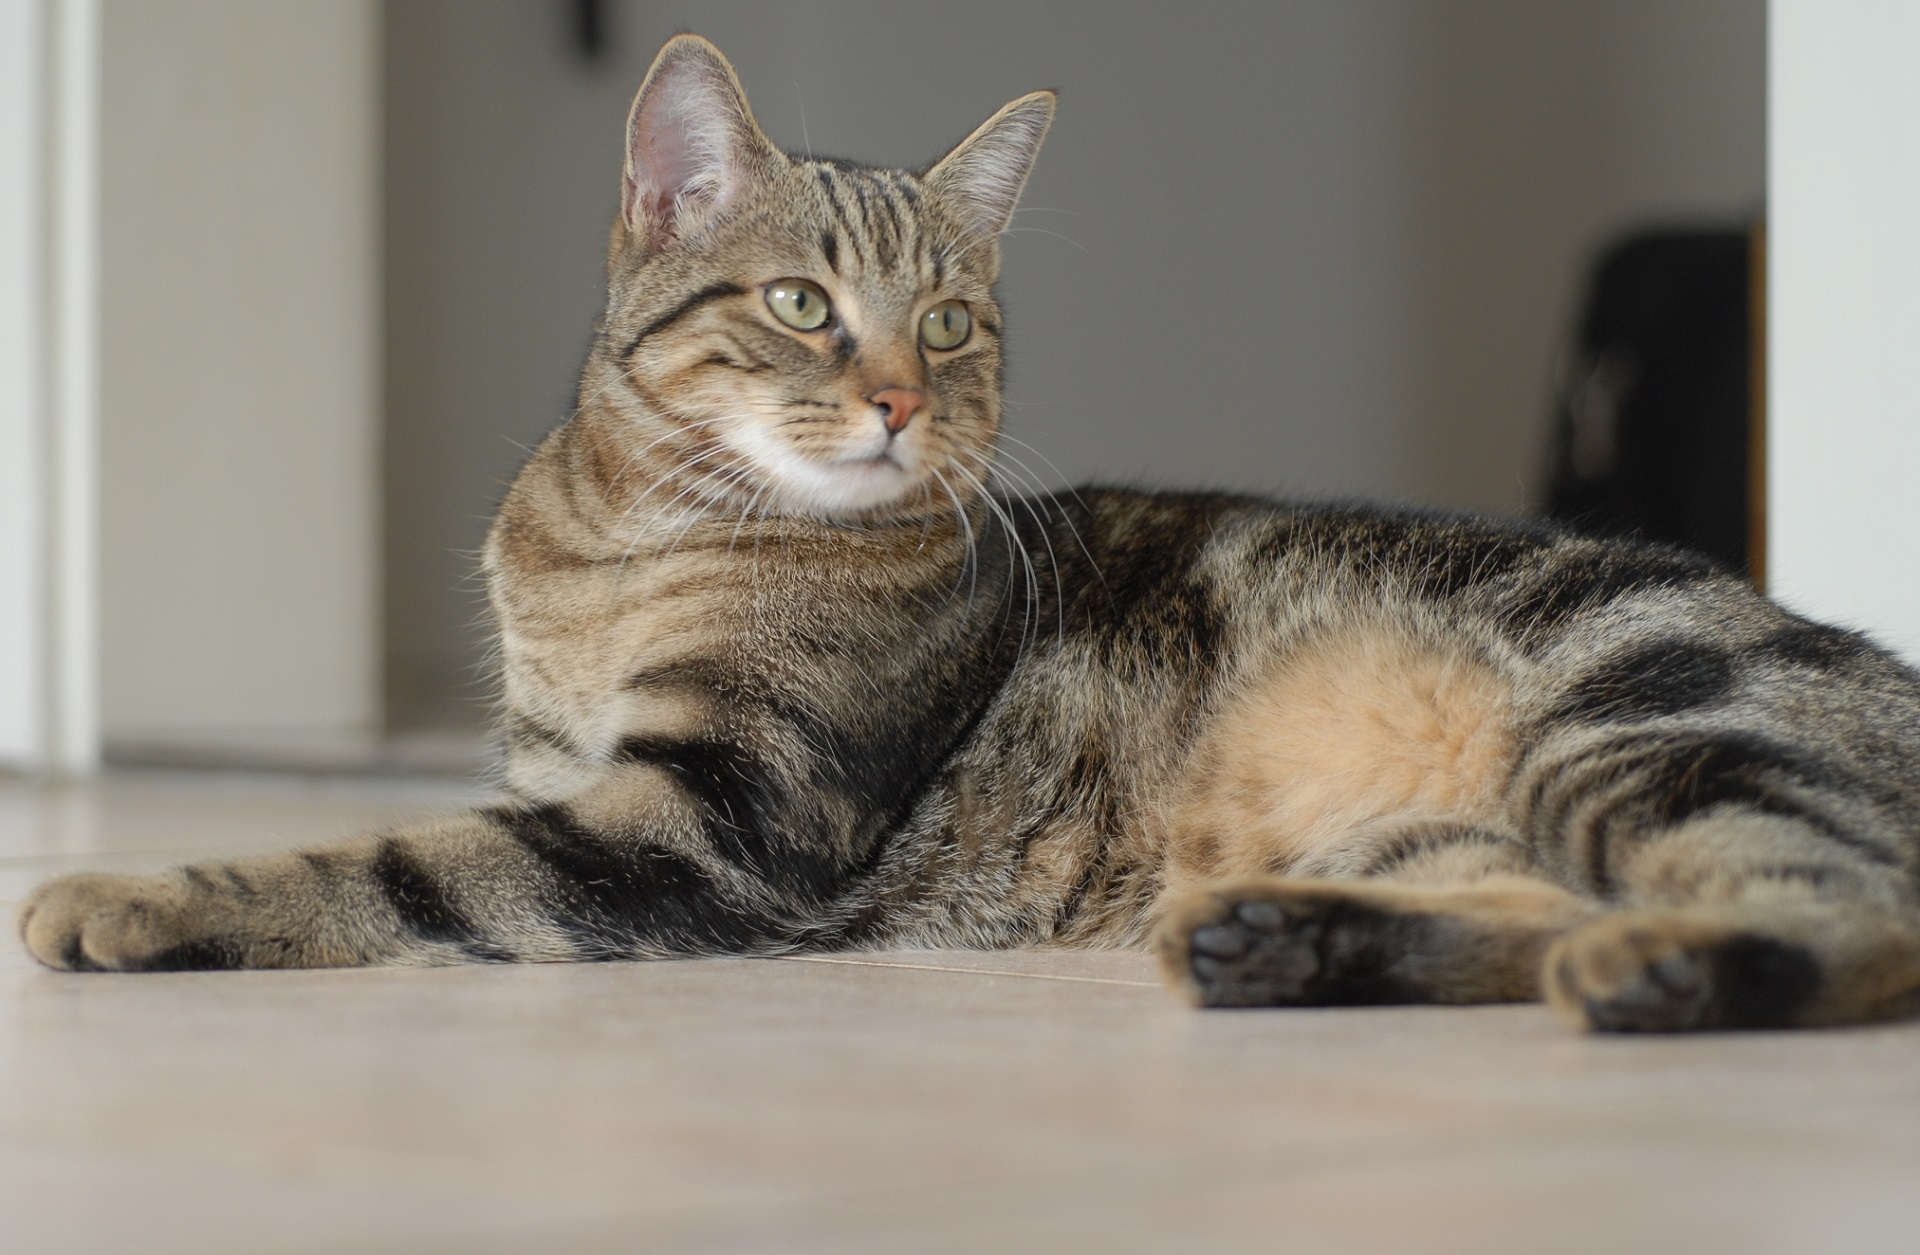 Best cat food for Egyptian Mau